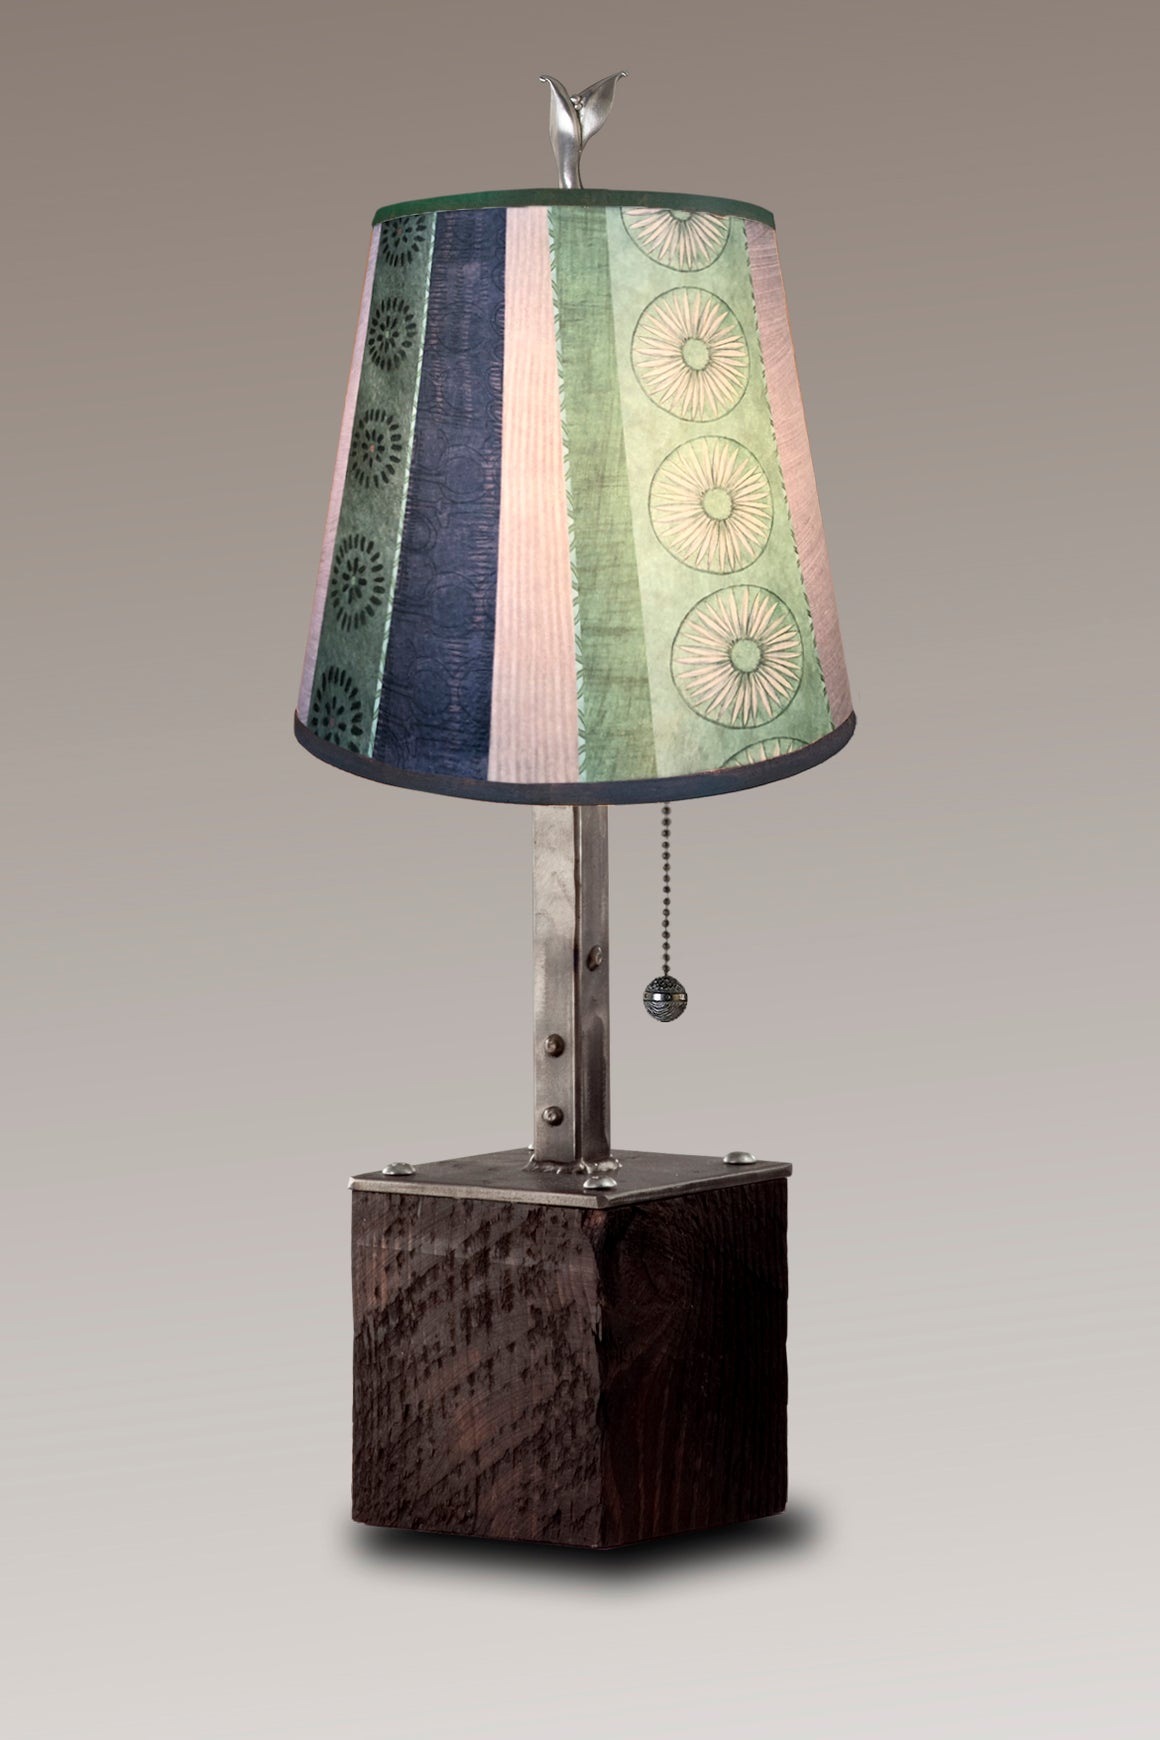 Steel Table Lamp on Reclaimed Wood with Small Drum Shade in Serape Waters